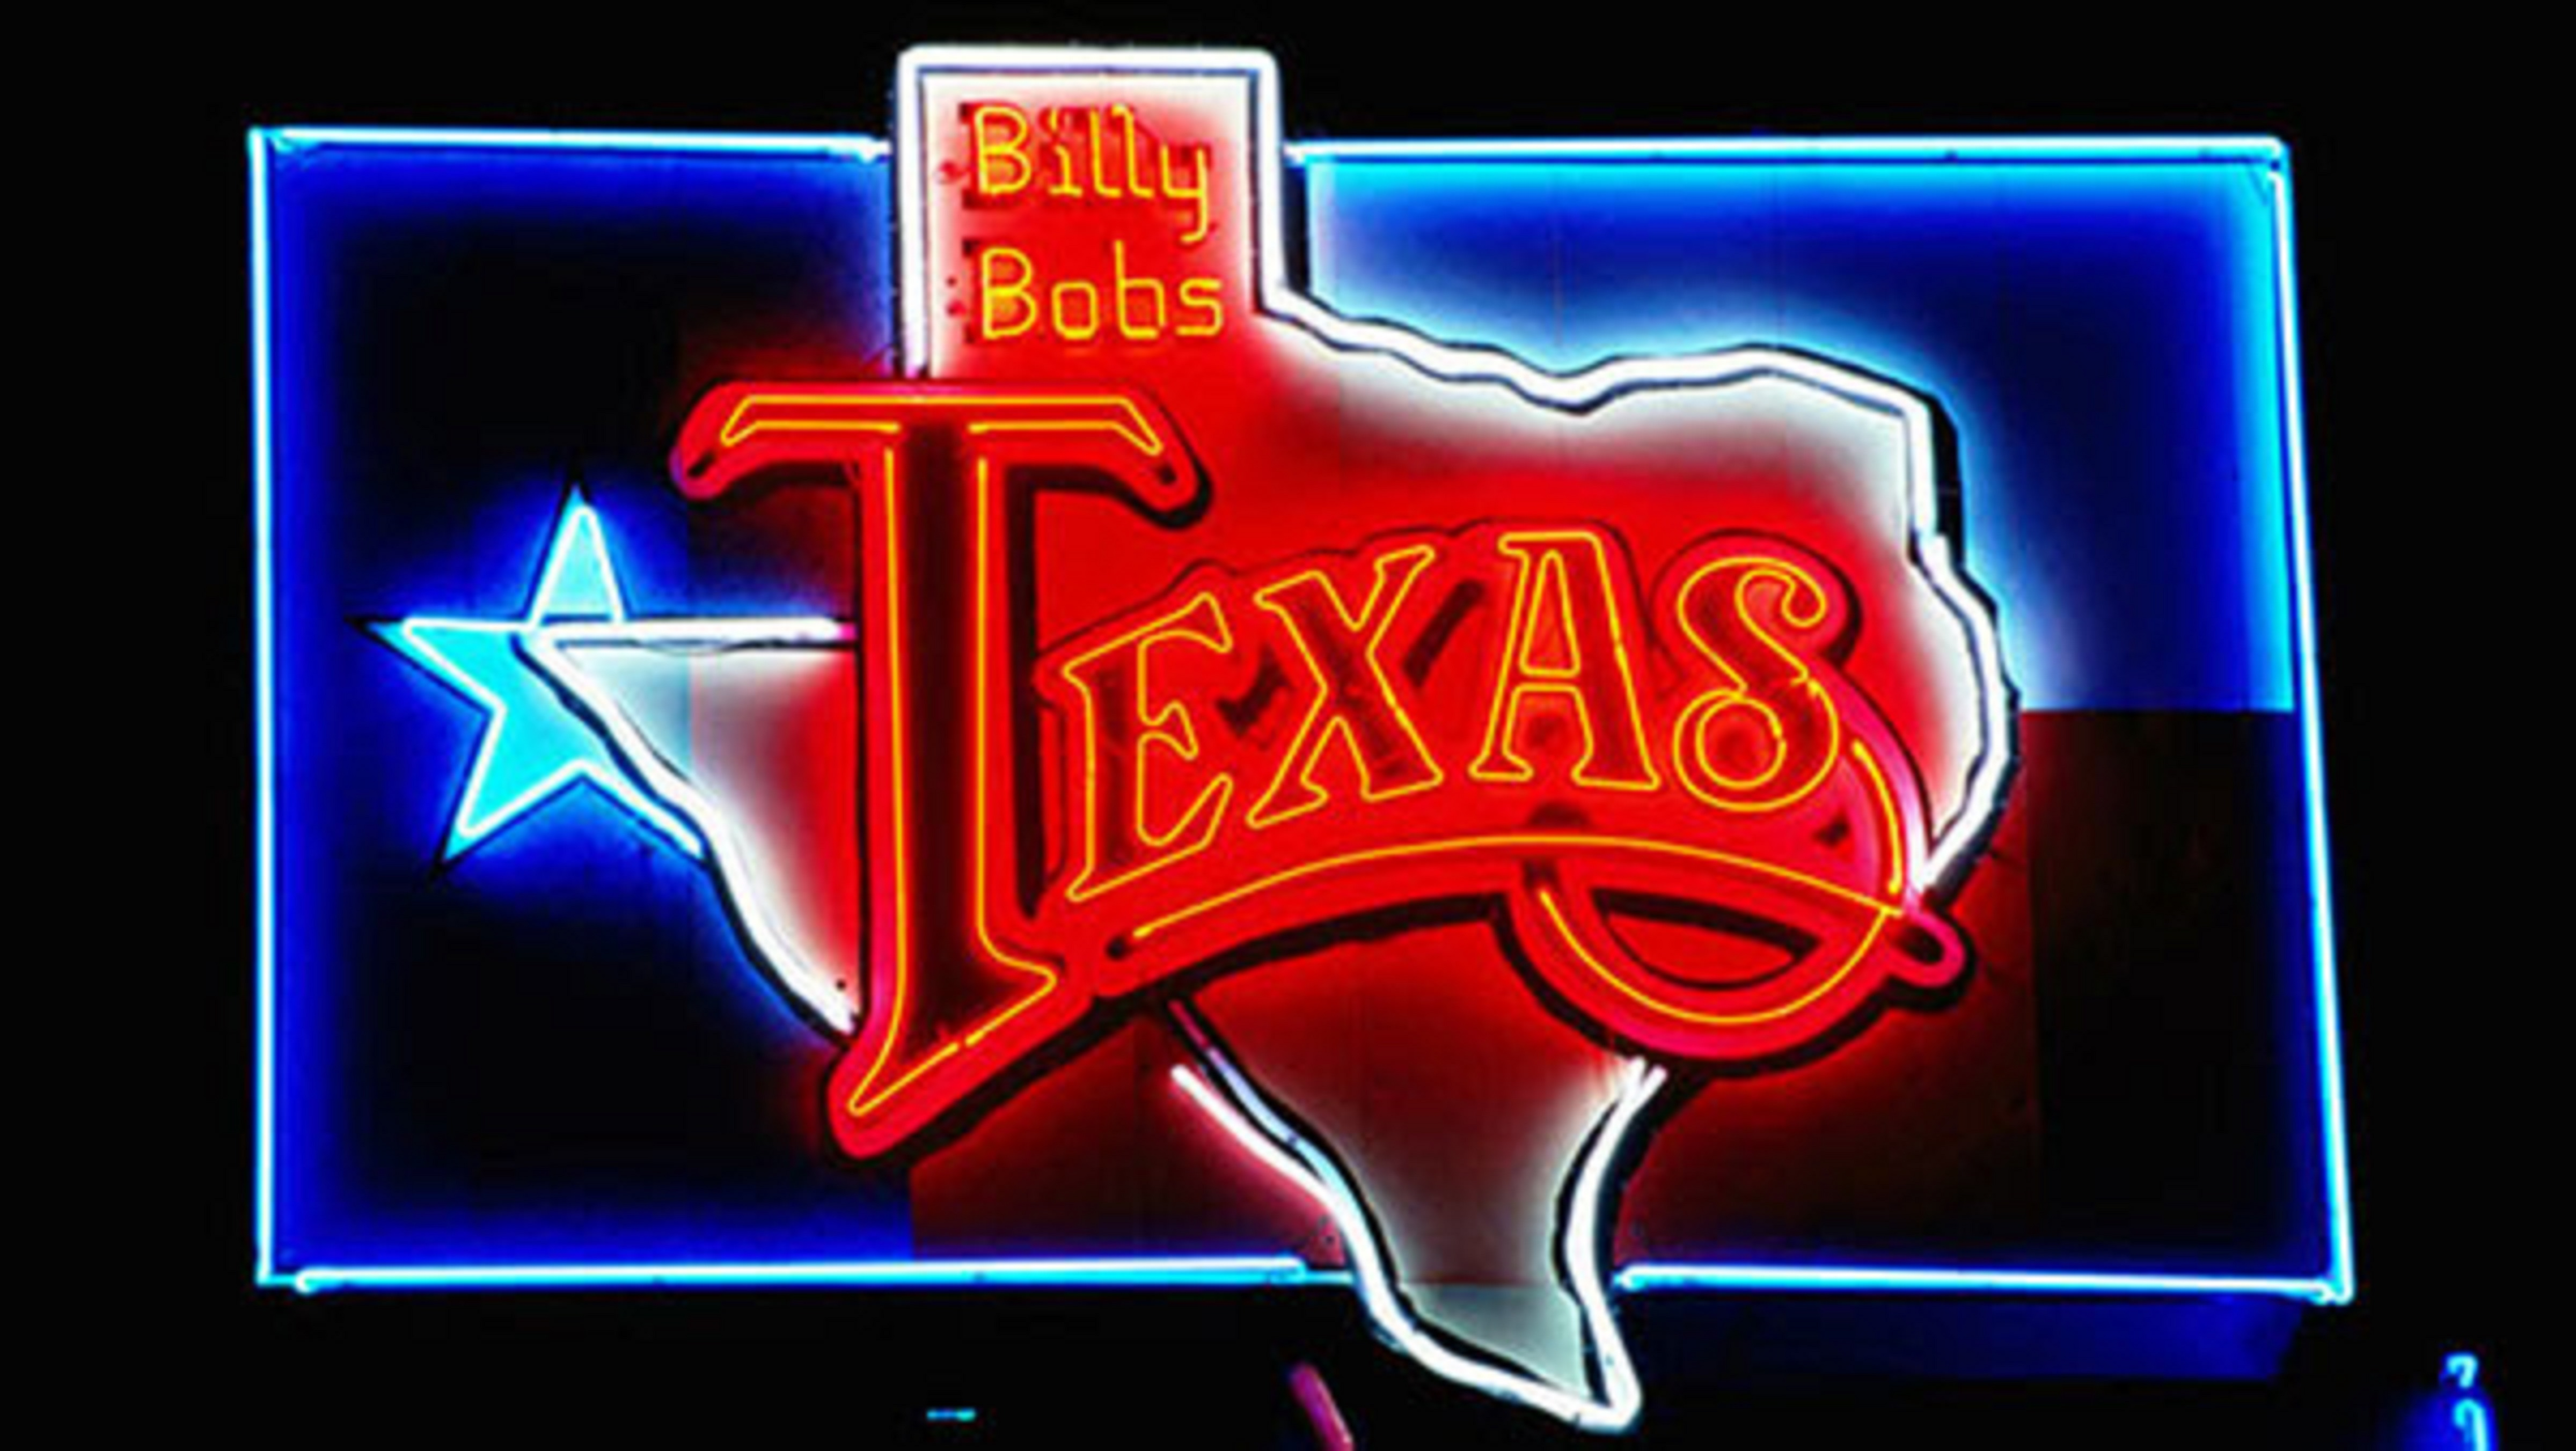 Billy Bob's Texas 40th Anniversary Celebration To Include Hank Williams, Jr. And Larry, Steve & Rudy: The Gatlin Brothers